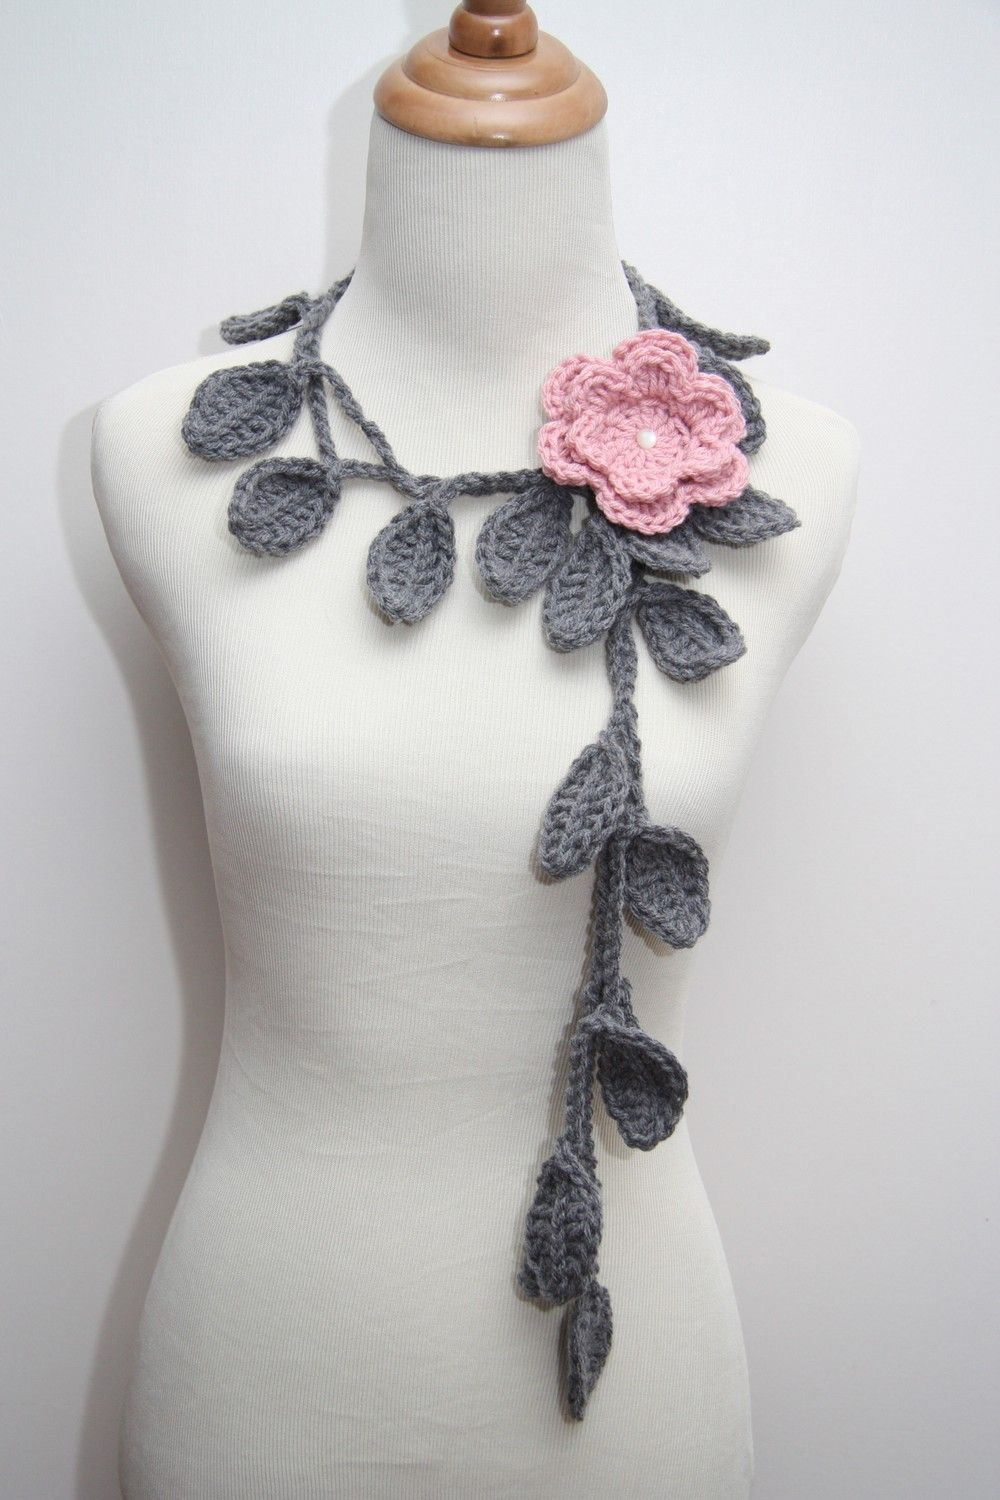 Crocheted Grey Leaf Necklace with Rose Pink Flower Brooch. $14.99, via Etsy.